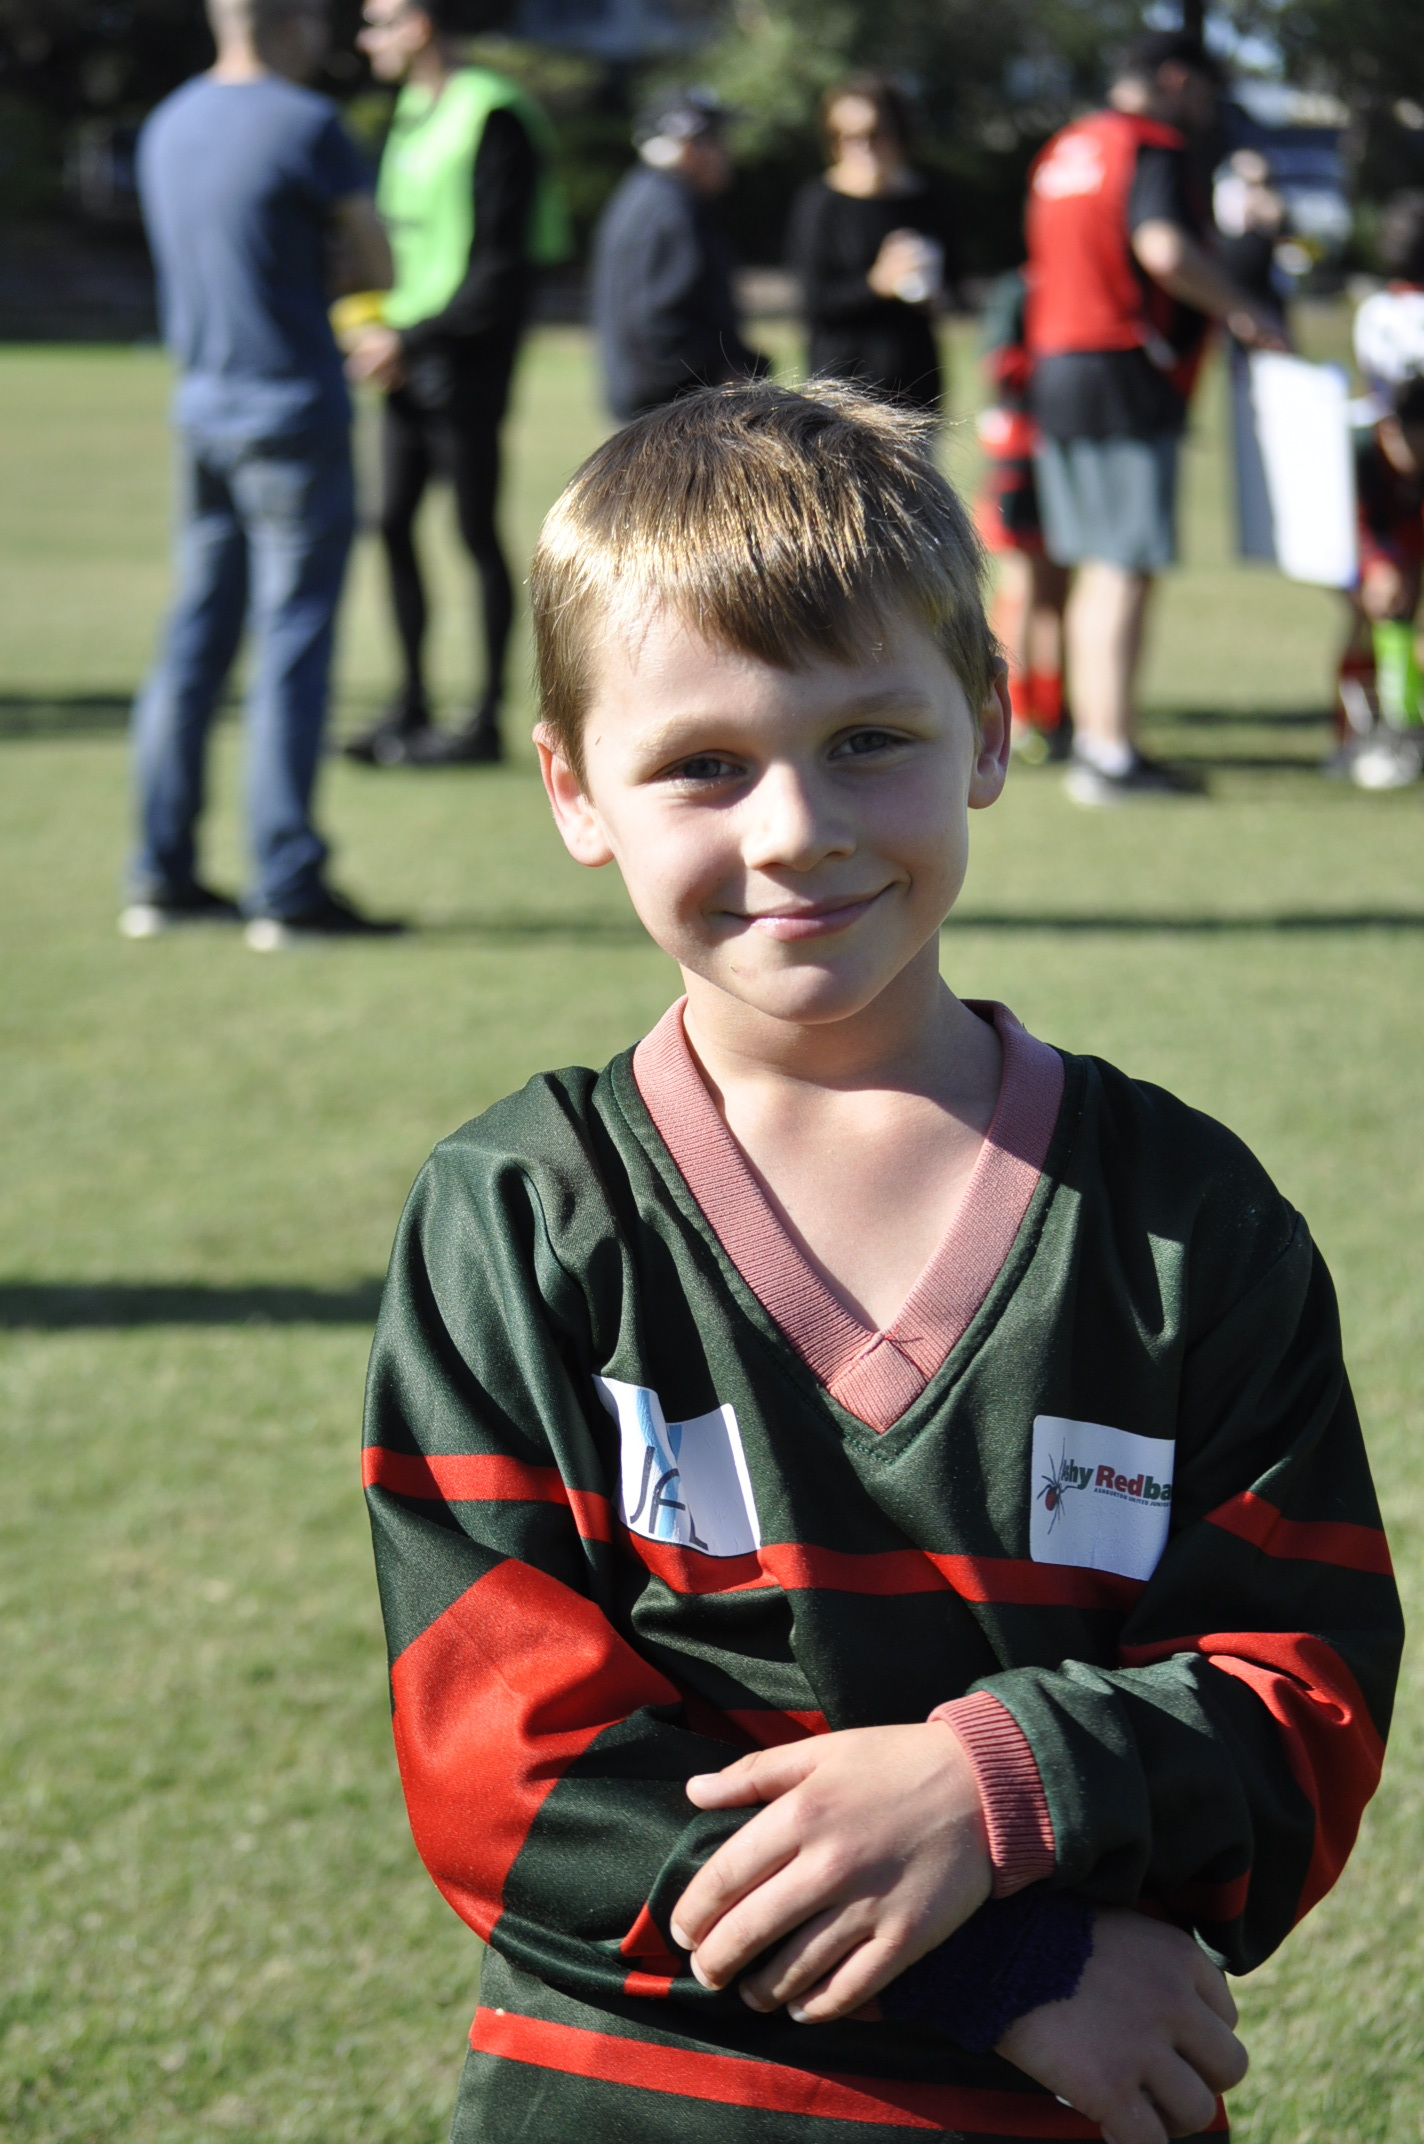 Congrats Jordan - what an exciting start to your Ashy footy experience, 3.2 in your first game!